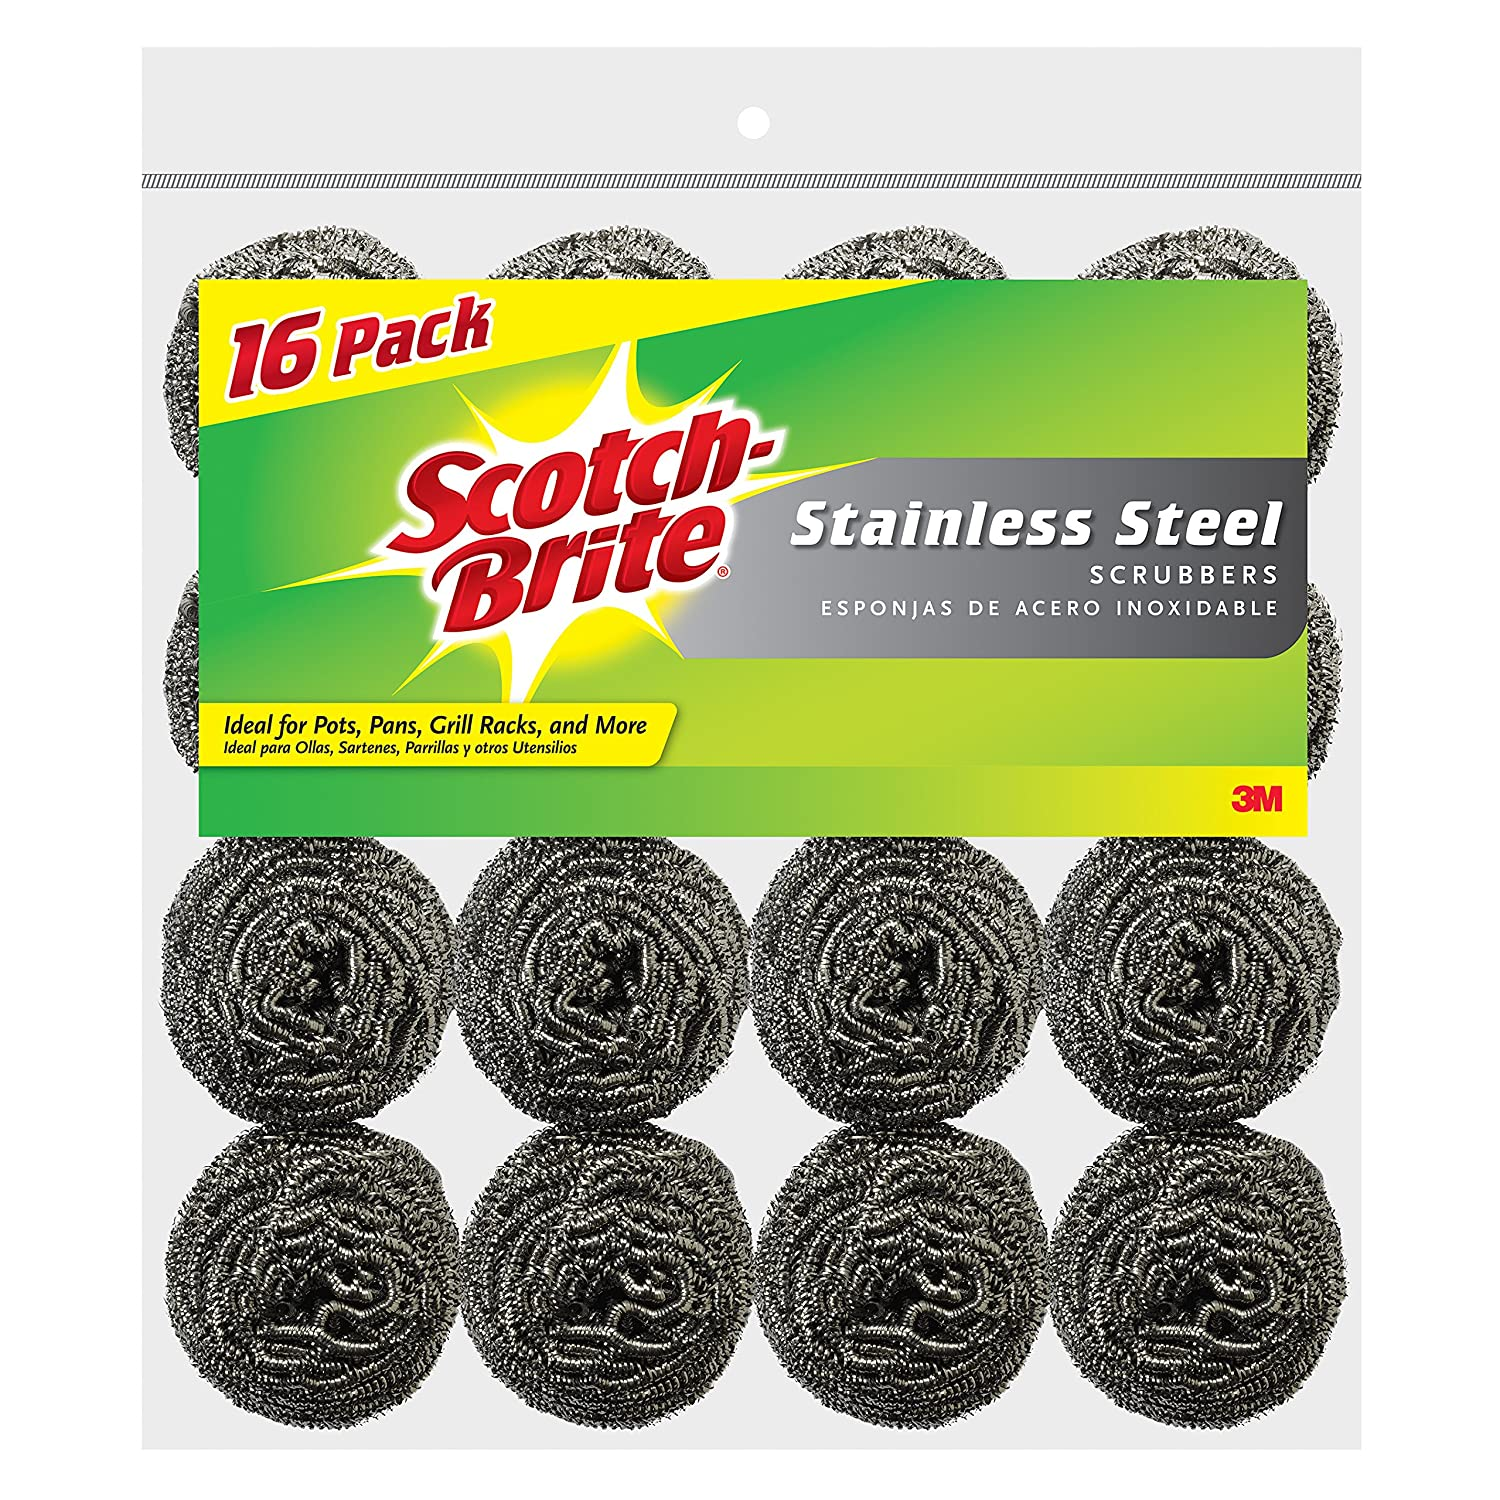 Amazon.com: Scotch-Brite Stainless Steel Scrubbing Pad, 2-Pads/Pk, 24-Packs (48 Pads Total): Health & Personal Care